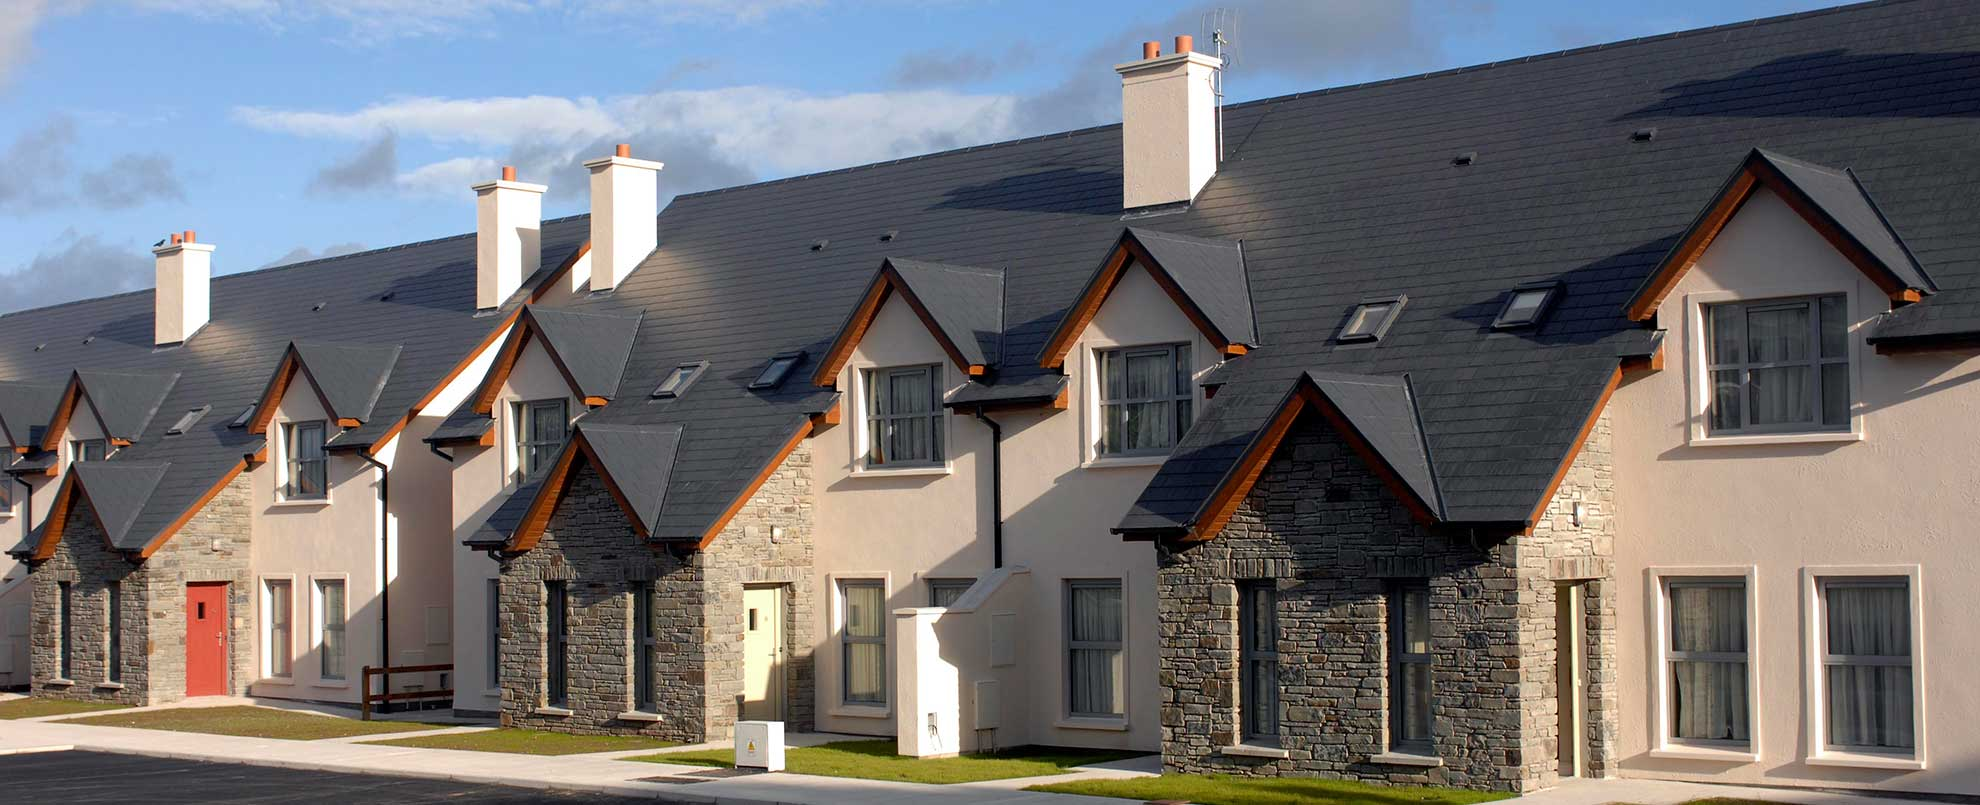 Kenmare Bay Self Catering Holiday Homes